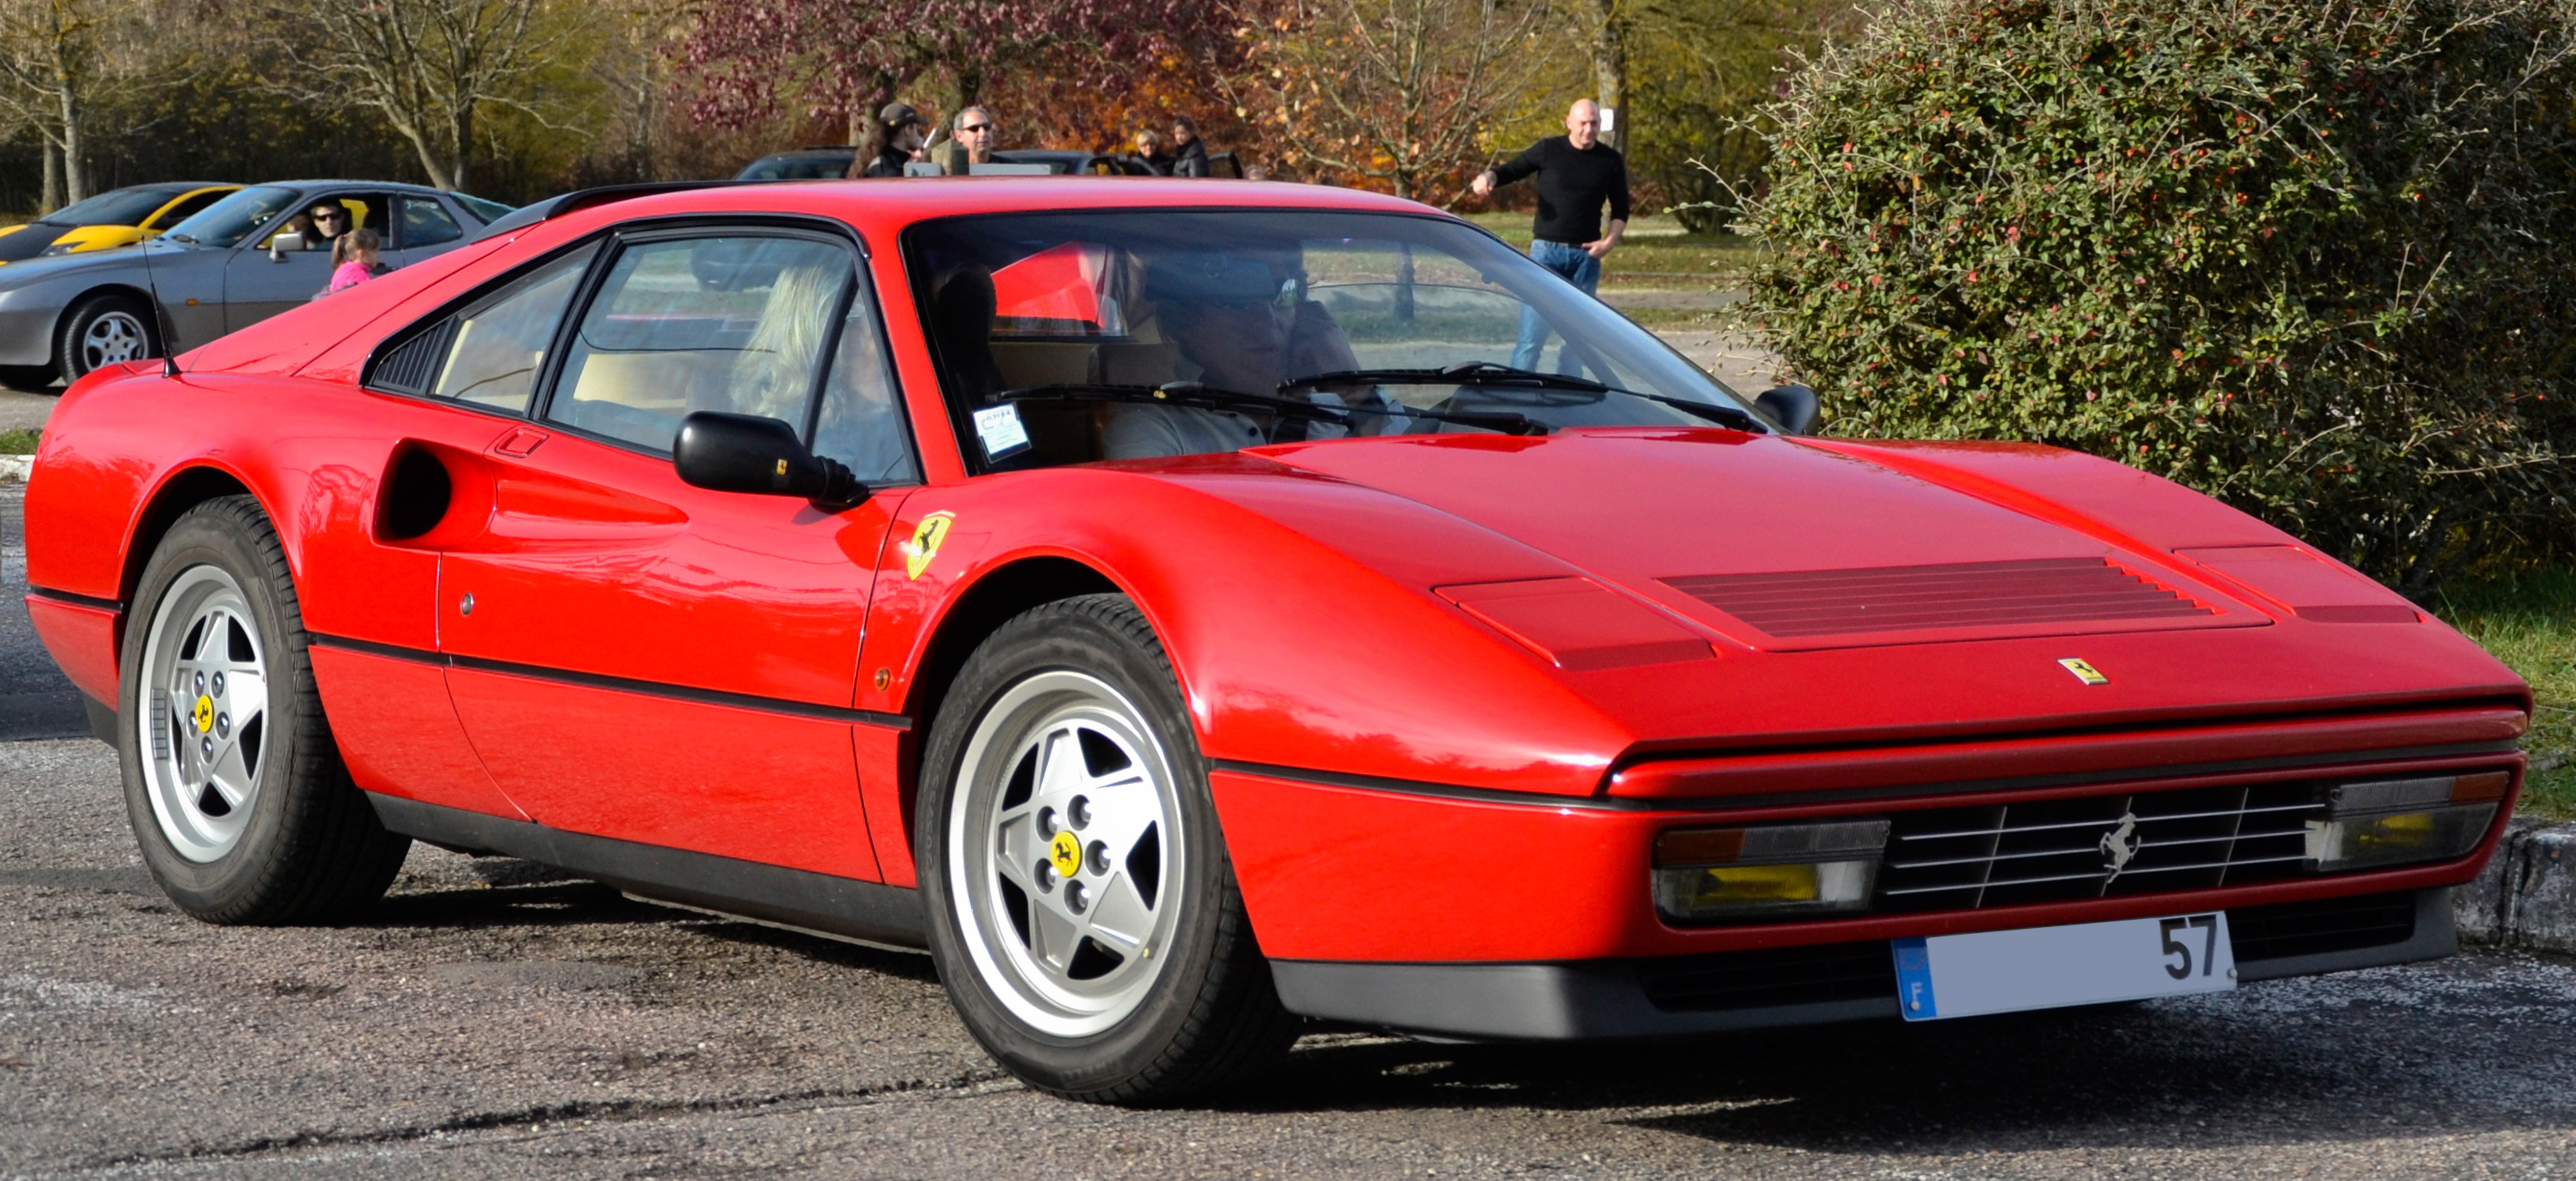 Ferrari Past Models More Than 60 Years Of Cars Ferrari Com >> Ferrari 328 Wikipedia